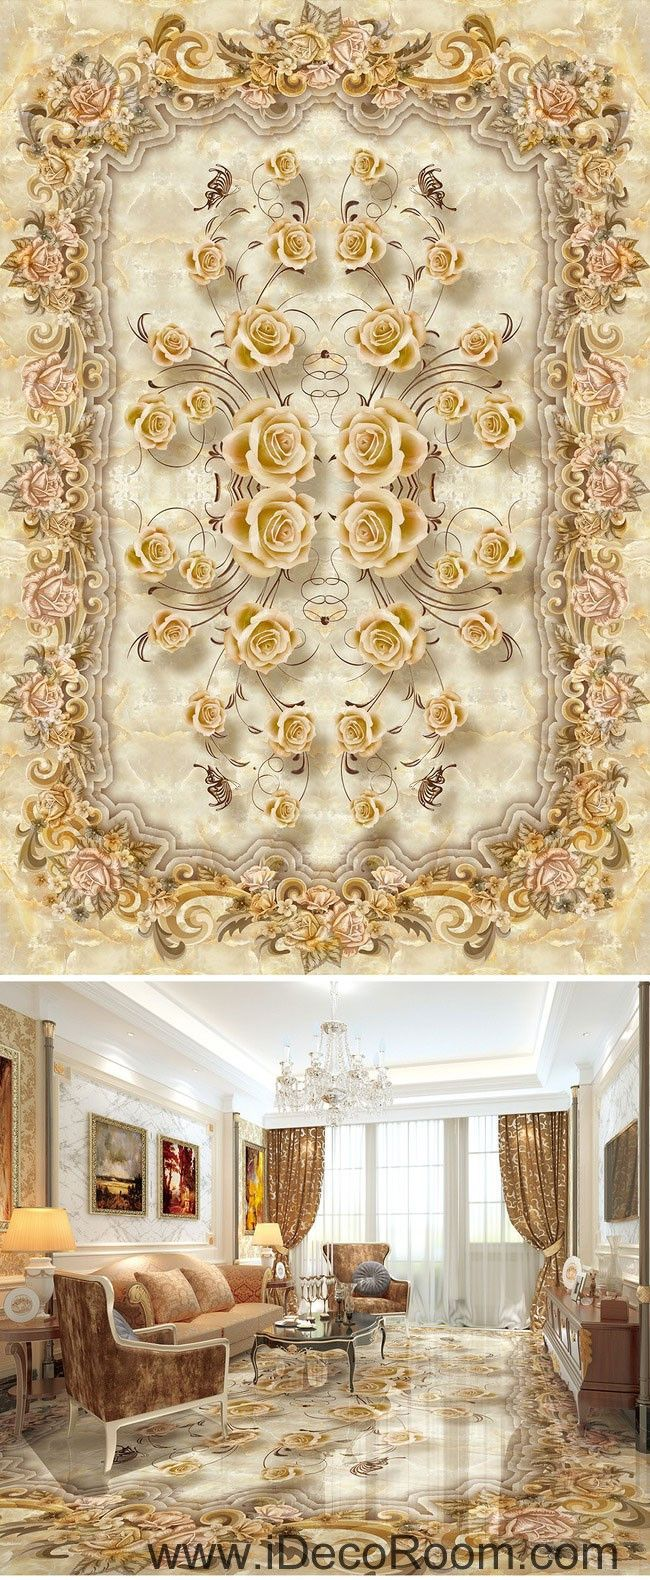 Classic Luxury Roses 00070 Floor Decals 3D Wallpaper Wall Mural ...